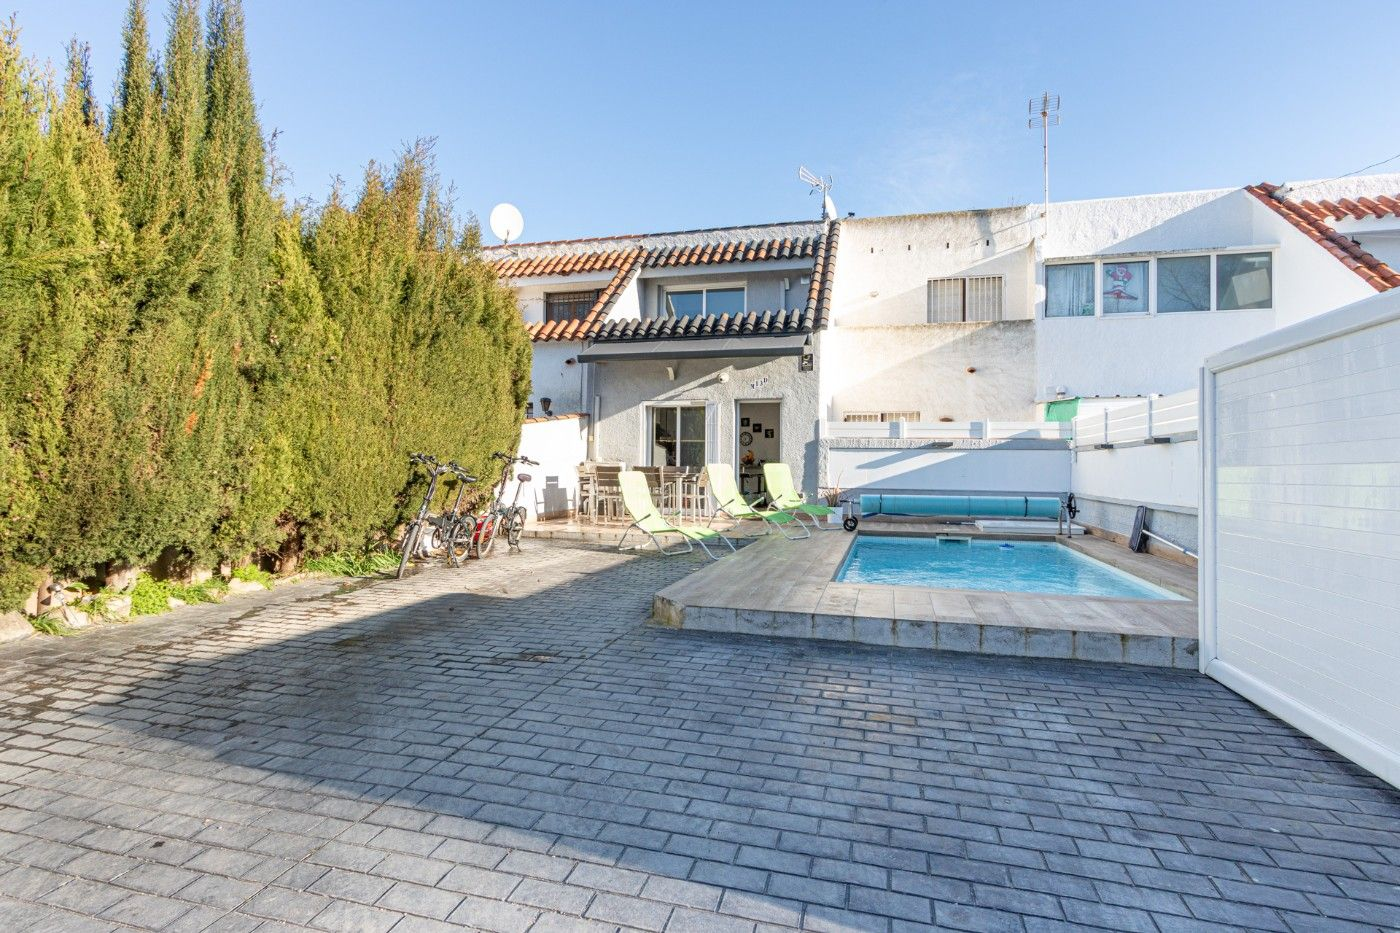 Semi detached house  Carrer montseny. Casa sector tranquilo con piscin